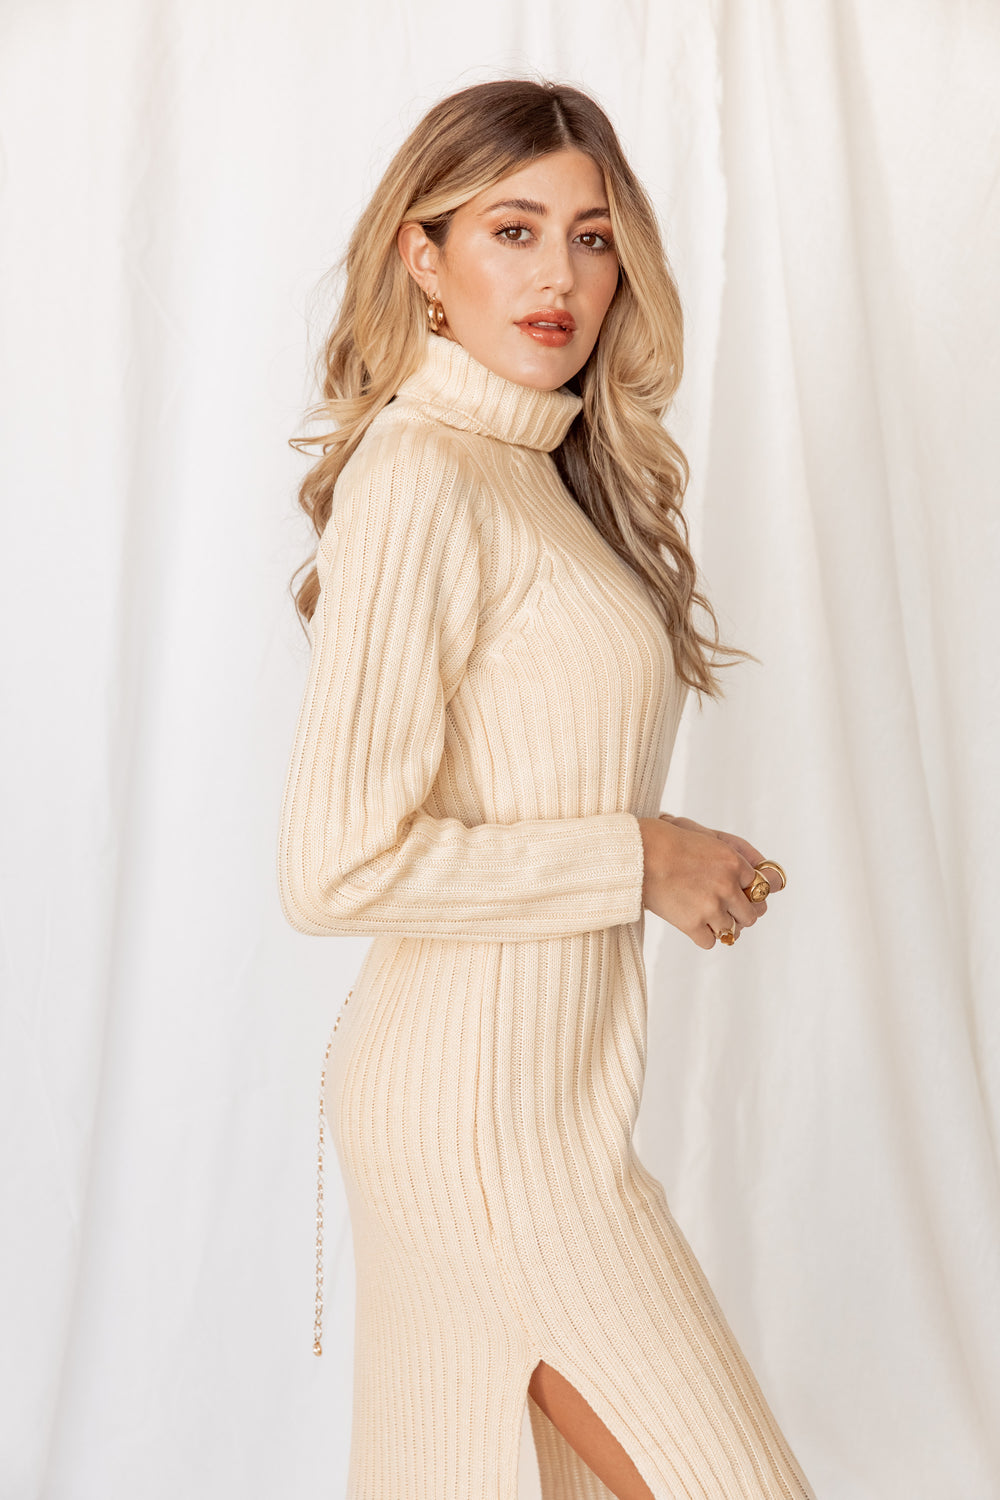 Timeless Ivory Midi Sweater Dress - SHOWROOM EXCLUSIVE